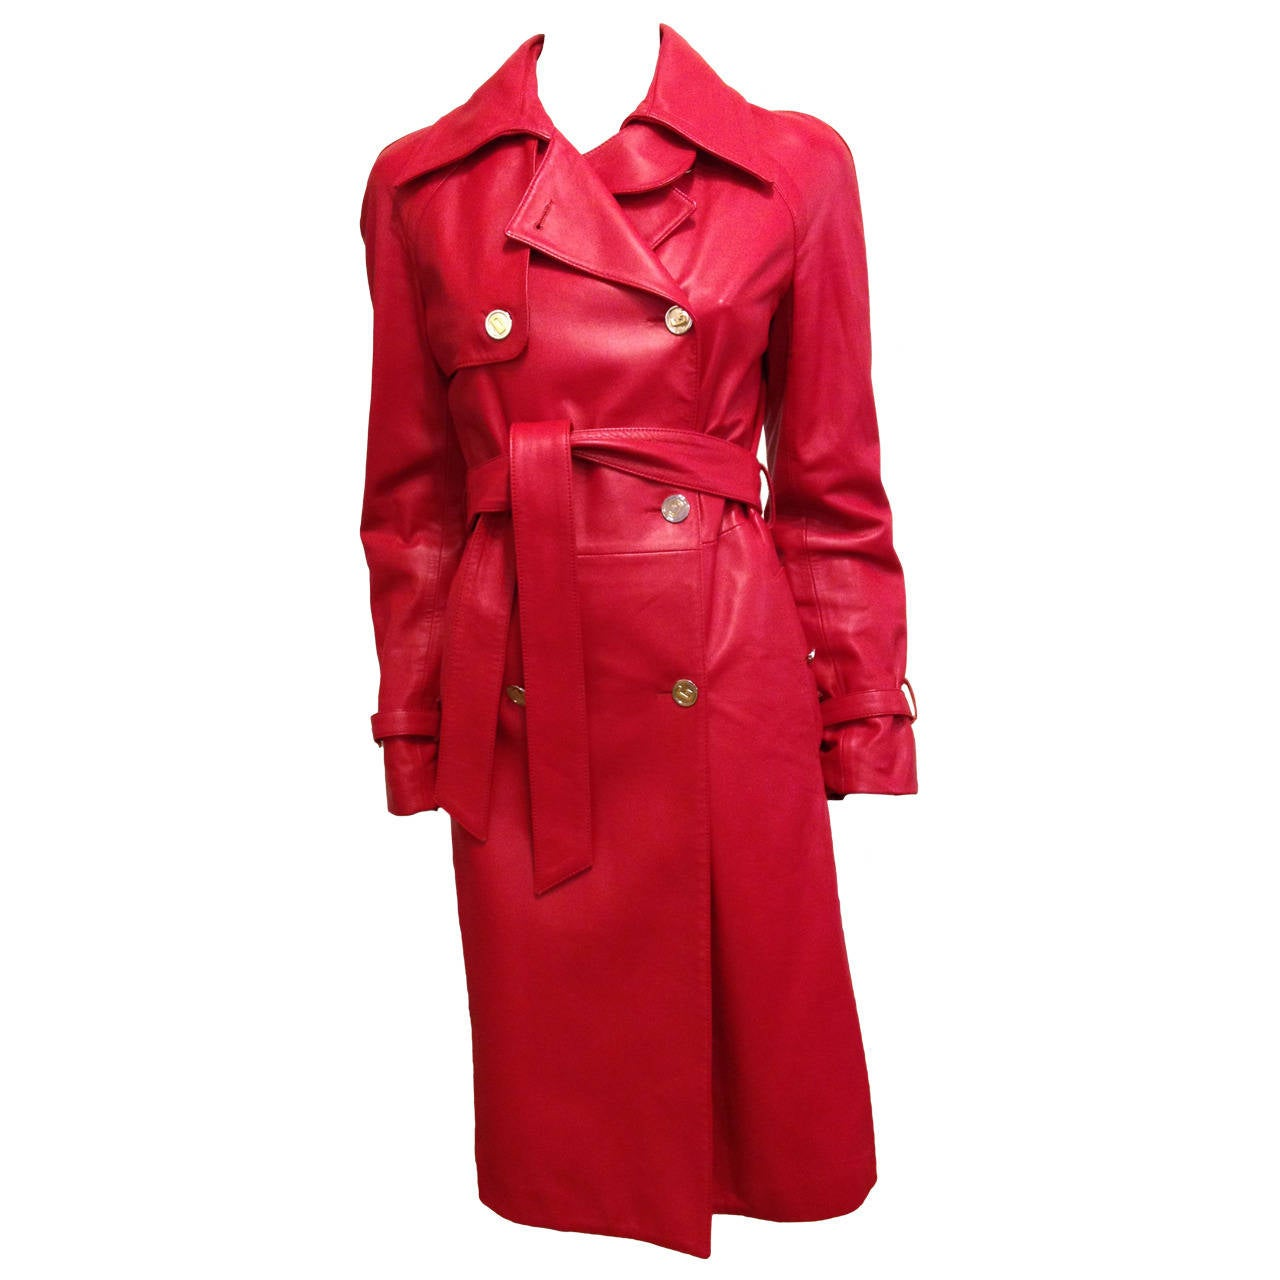 Dolce and Gabbana Red Leather Trench Coat at 1stdibs